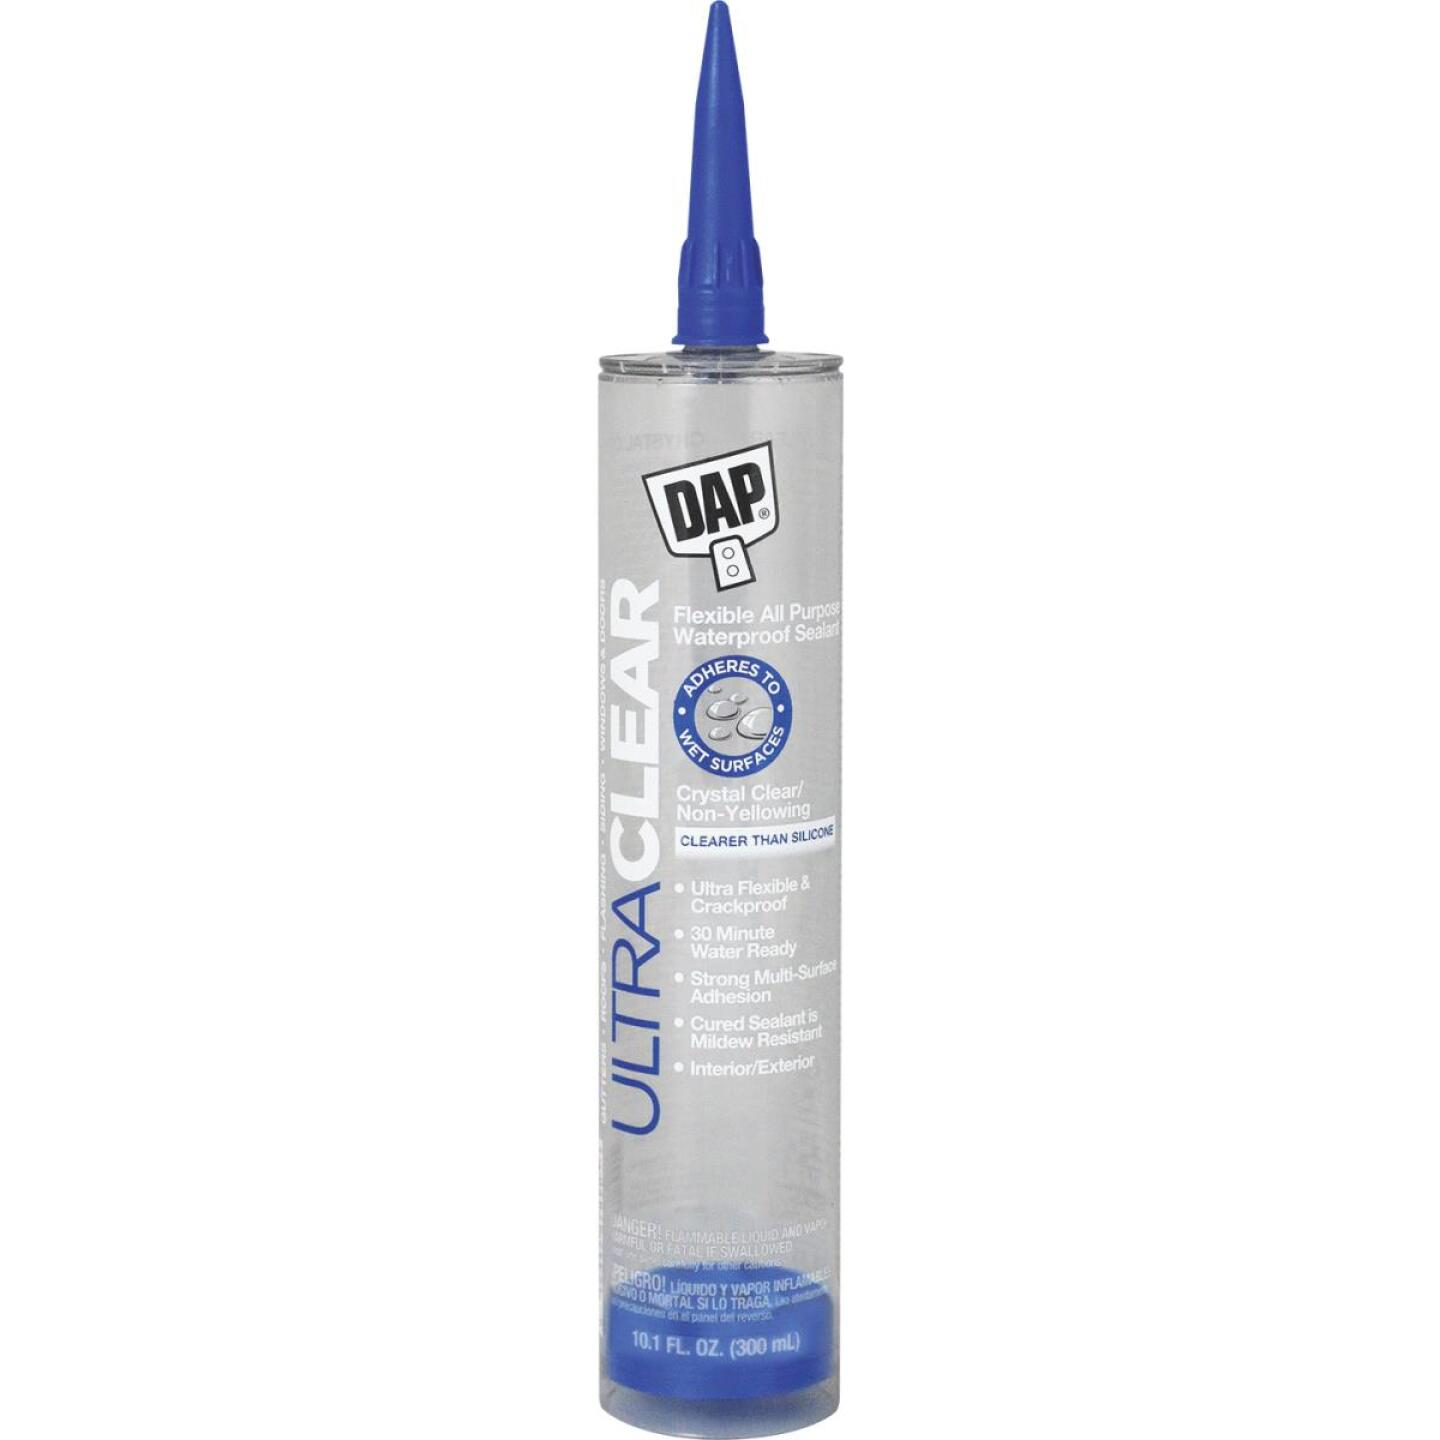 DAP Ultra Clear 10.1 Oz. Flexible Elastomeric Sealant Image 1